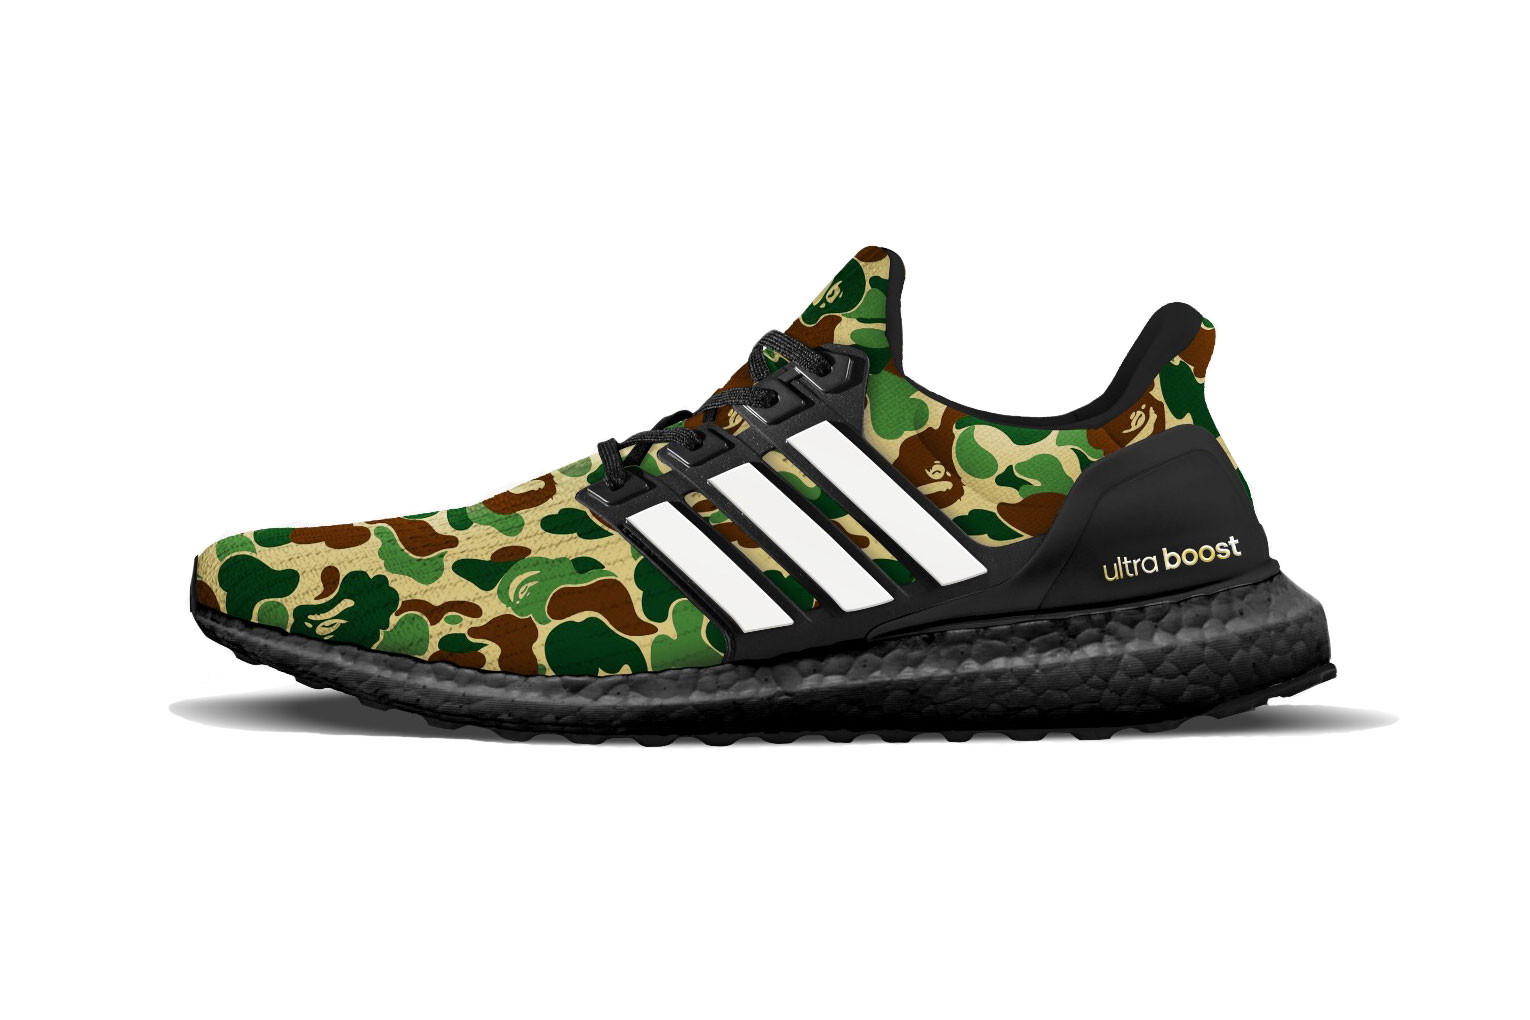 The BAPE x adidas Ultra Boost Gets A Release Date | The Sole